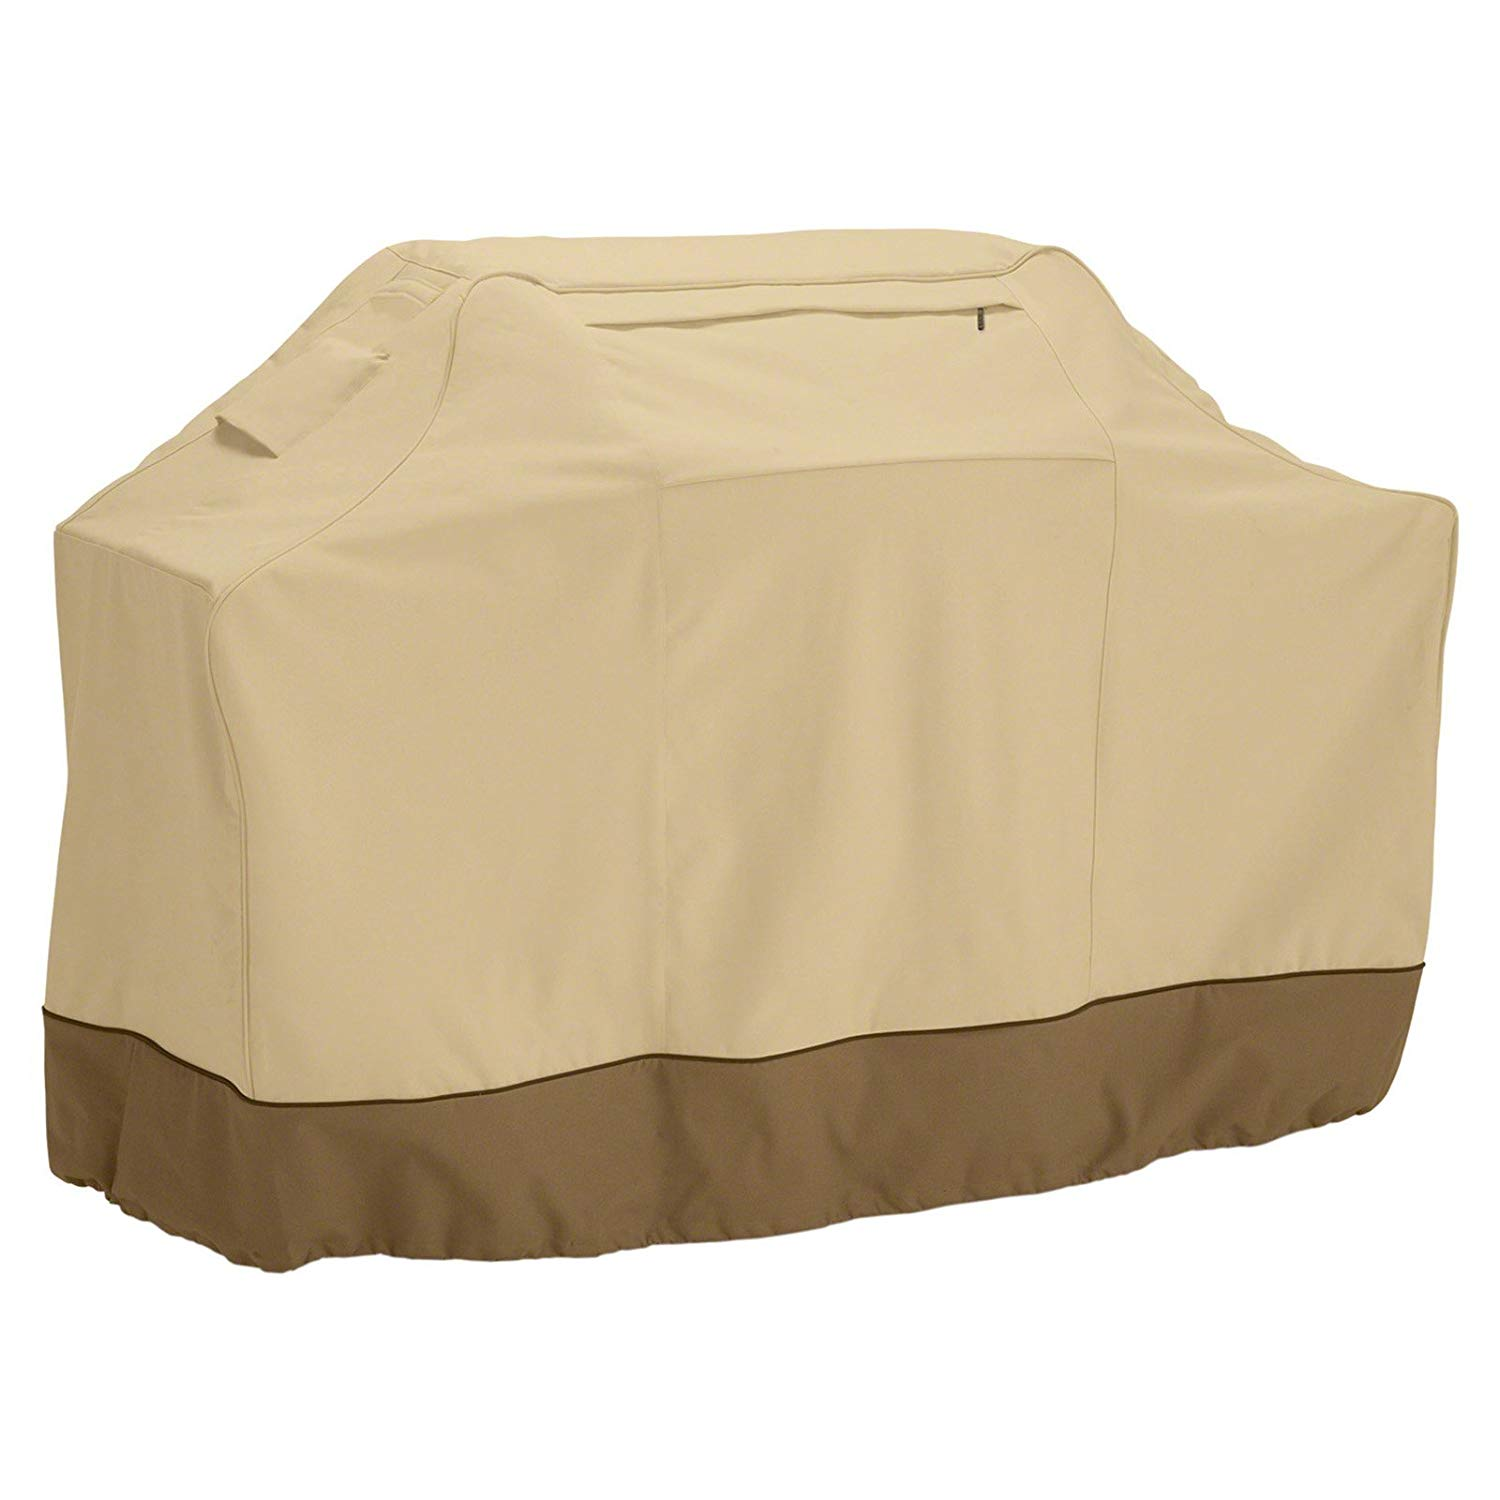 N&T 1 Piece Beige Outdoor Camping Grill Cover 70 Inch, Water Resistant Bbq Cover Waterproof Medium Durable Patio Barbecue Cover Heavy Duty Material Weather Resistant Air Vents Reduce, Polyester